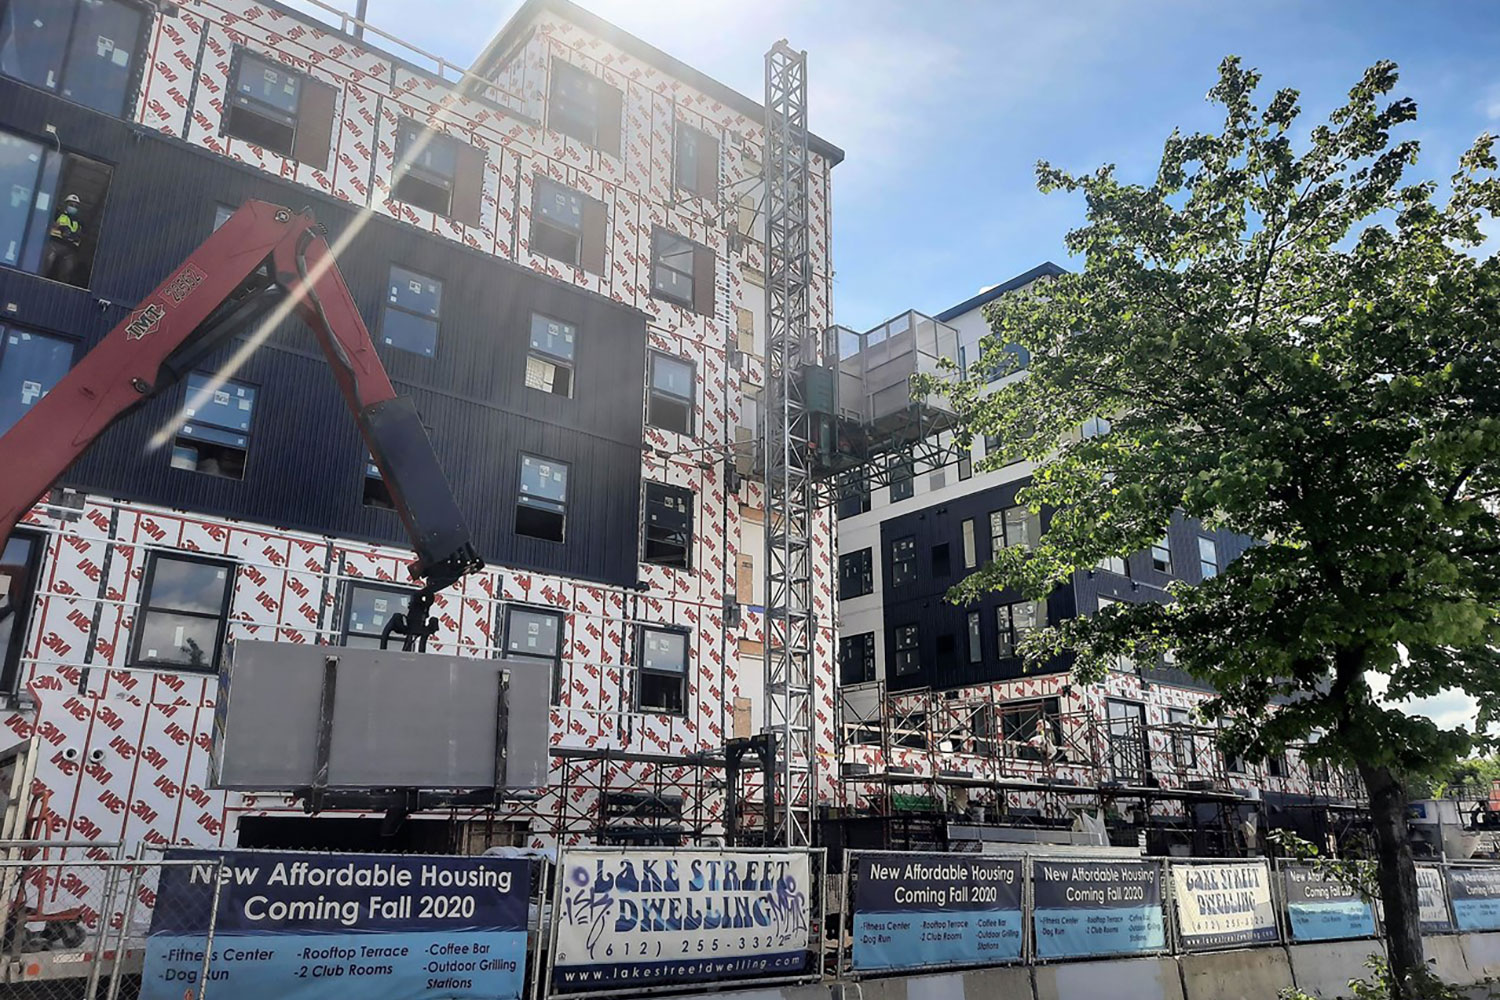 Lake Street Dwelling brings affordability to the heart of Uptown